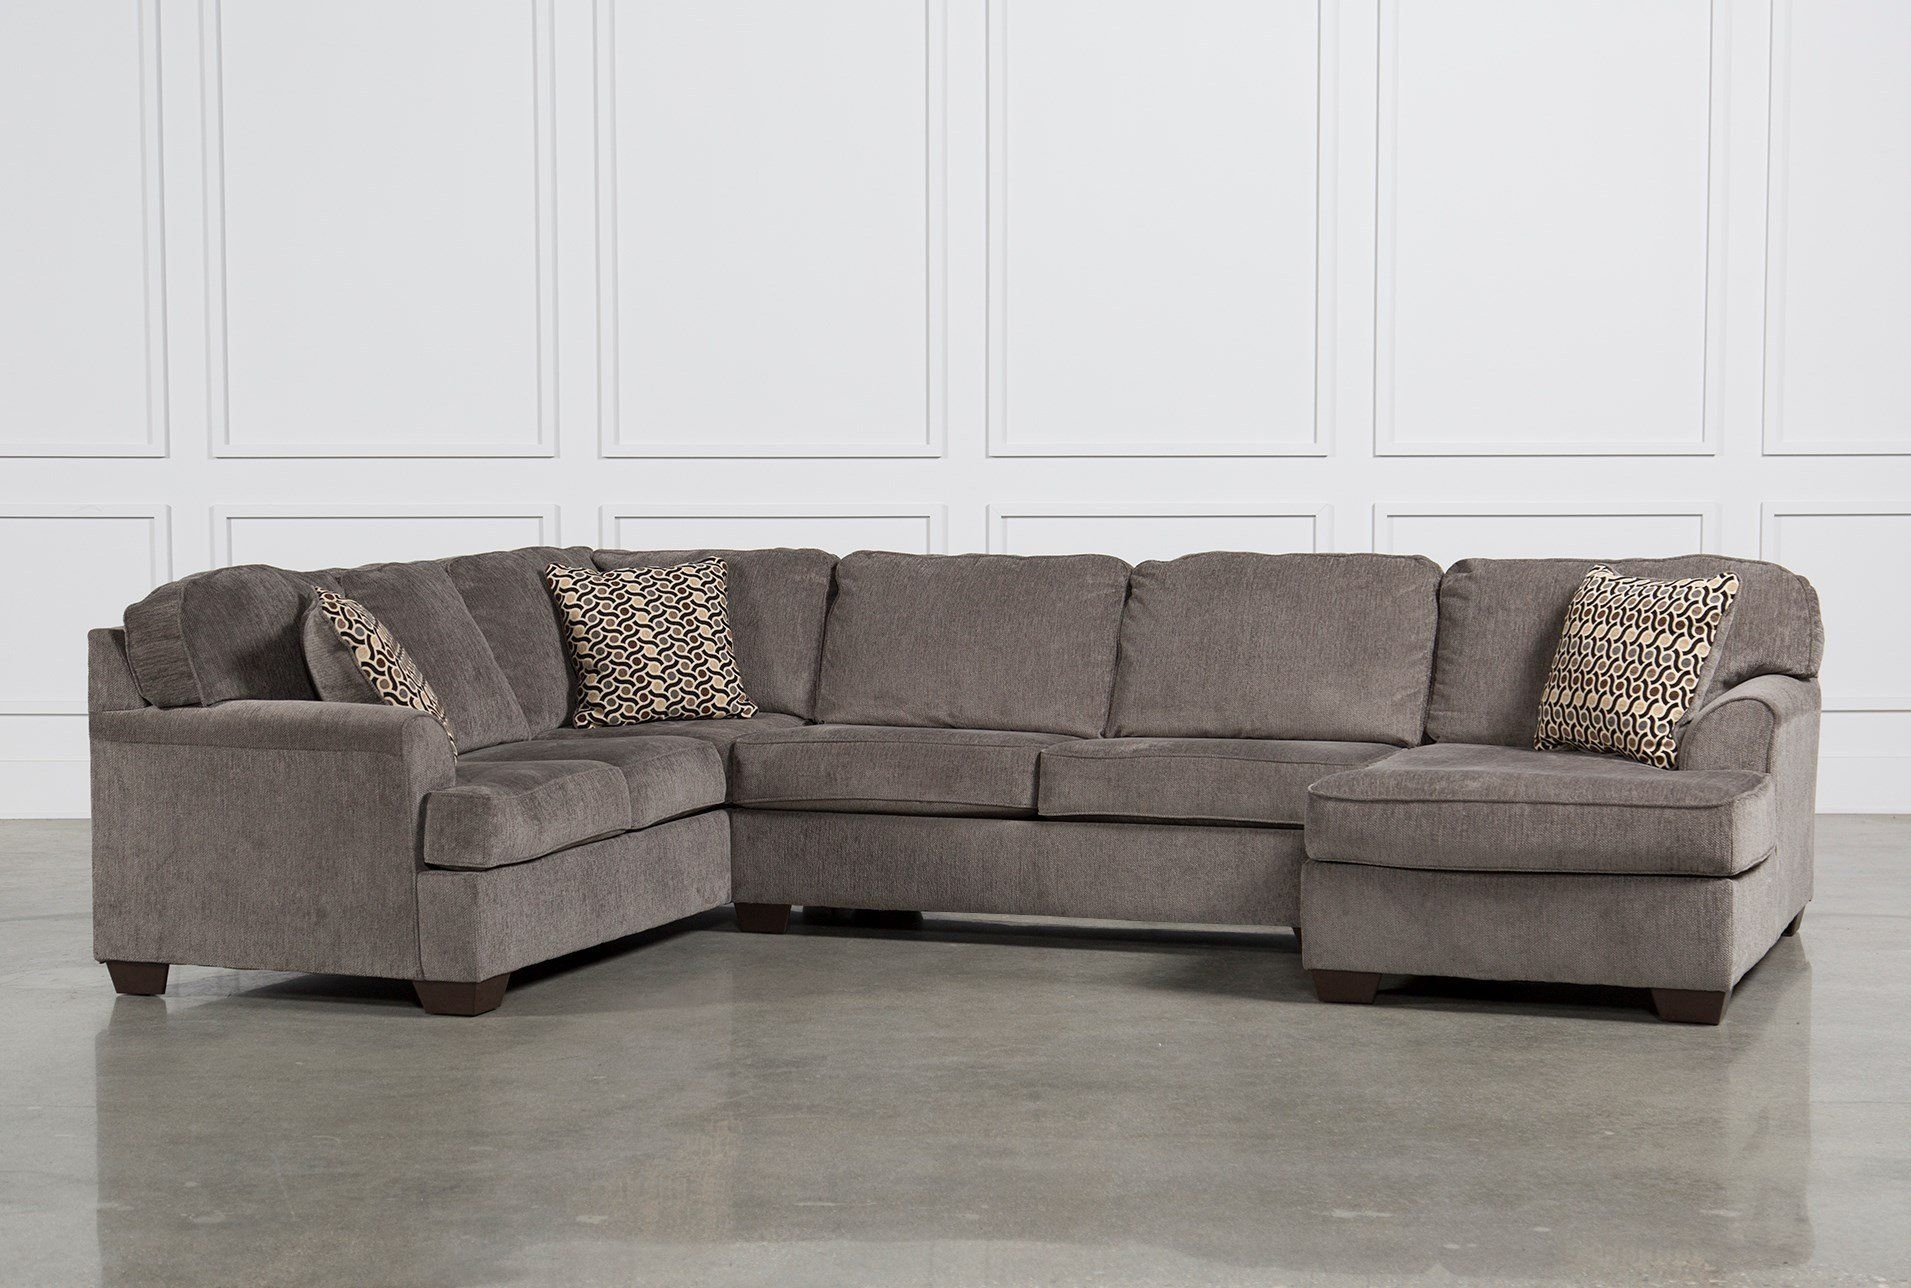 Loric Smoke 3 Piece Sectional W/raf Chaise | Upholstery, Pillows And Pertaining To Meyer 3 Piece Sectionals With Raf Chaise (View 4 of 25)